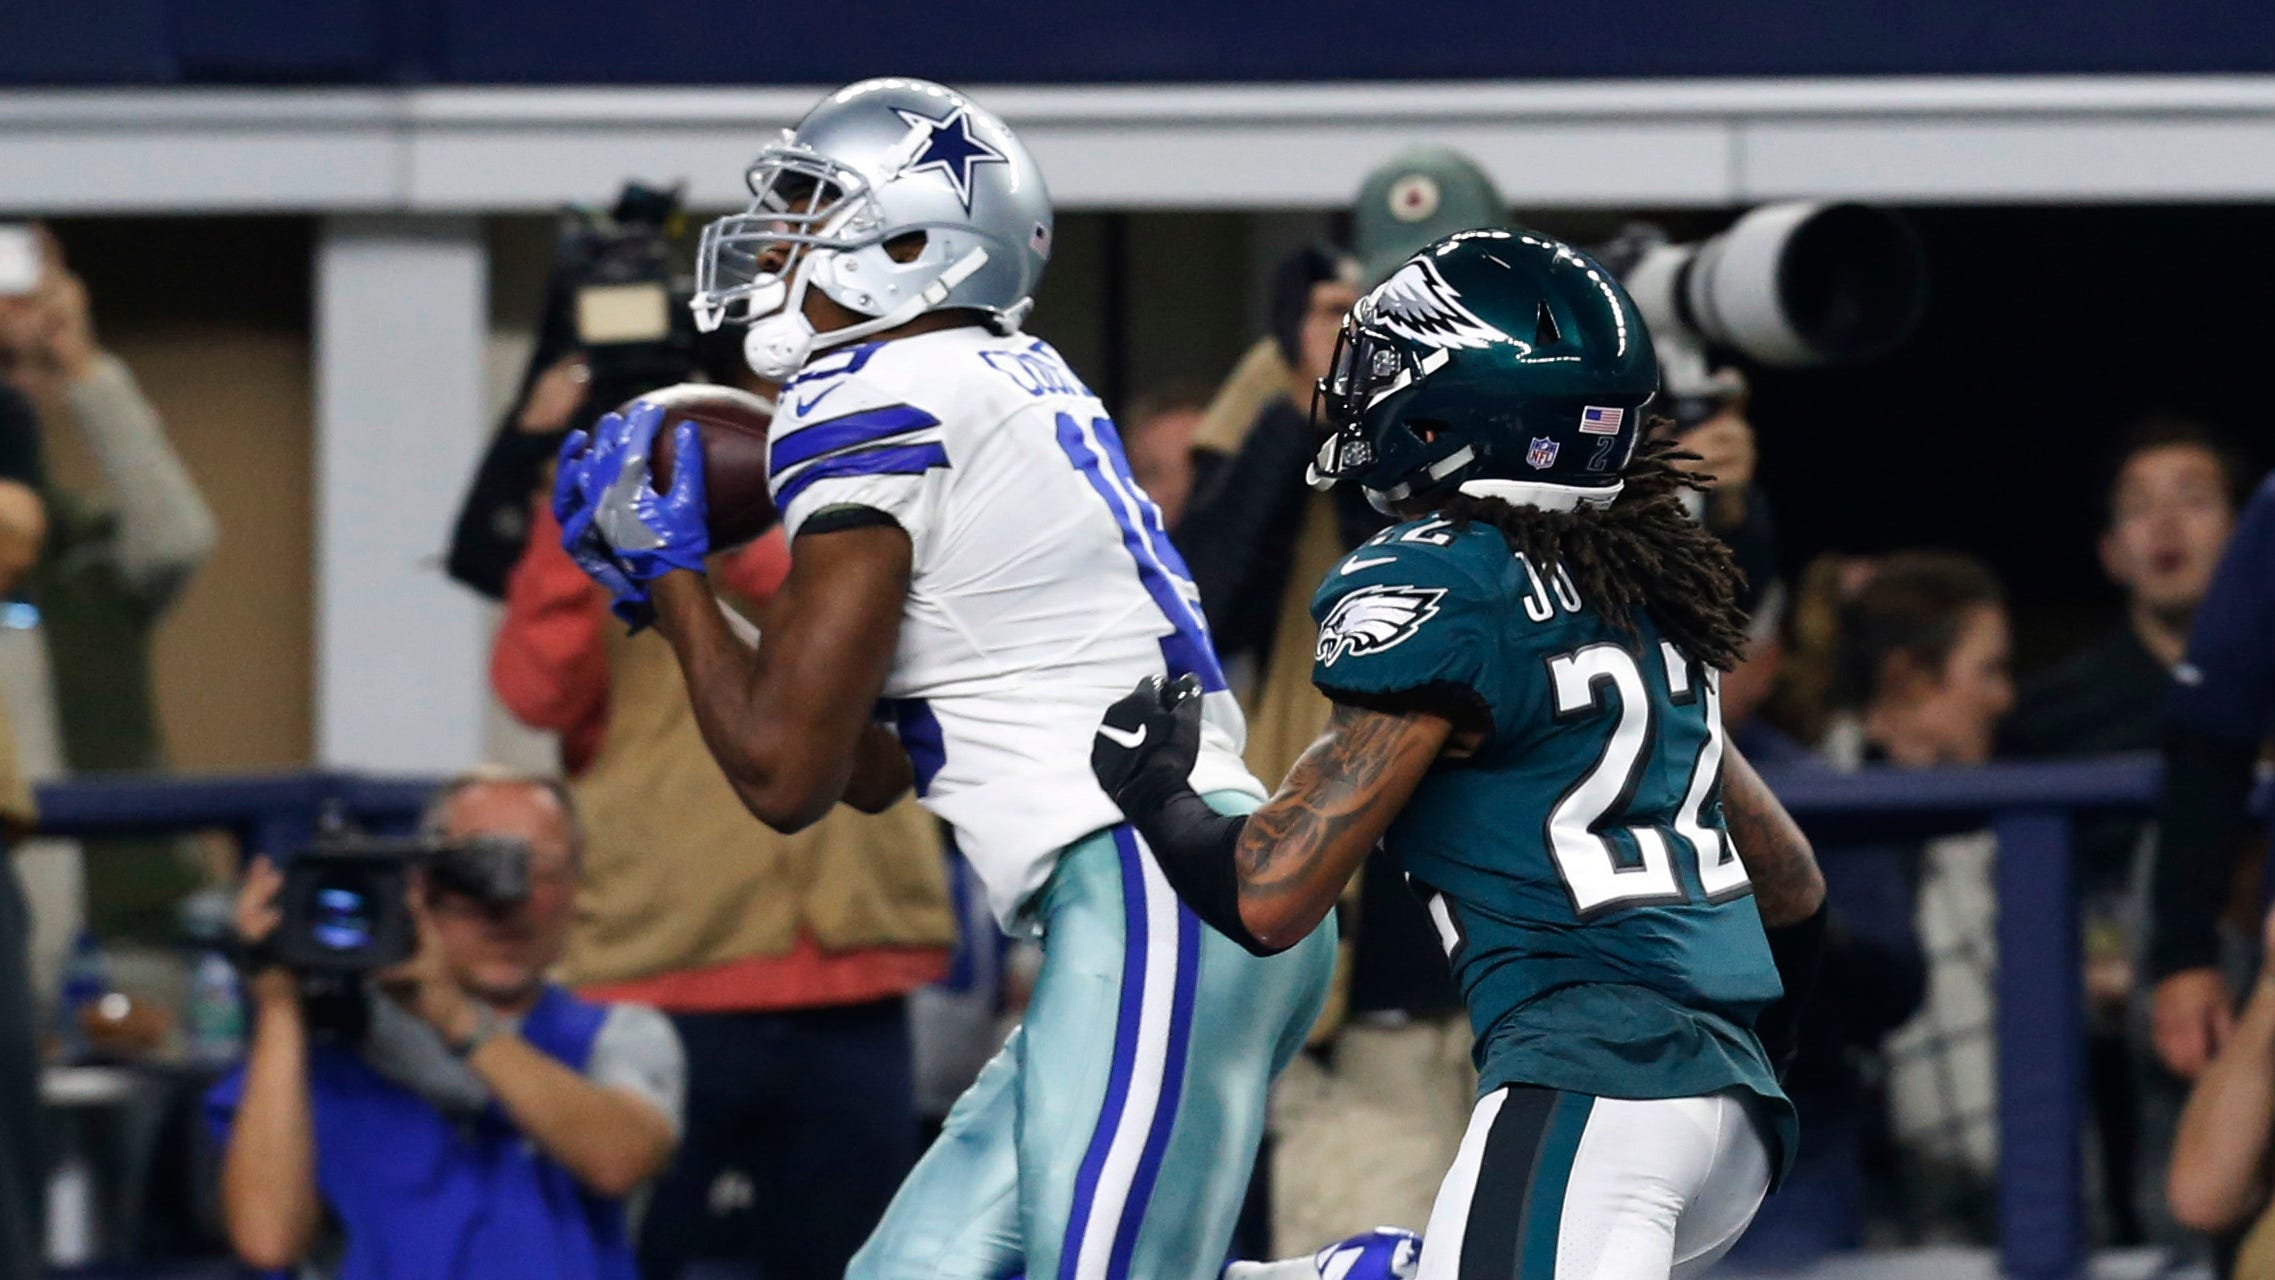 Sidney Jones played most of the second half on a strained hamstring, and the Cowboys took advantage. If Jones sits out, who is going to replace him?